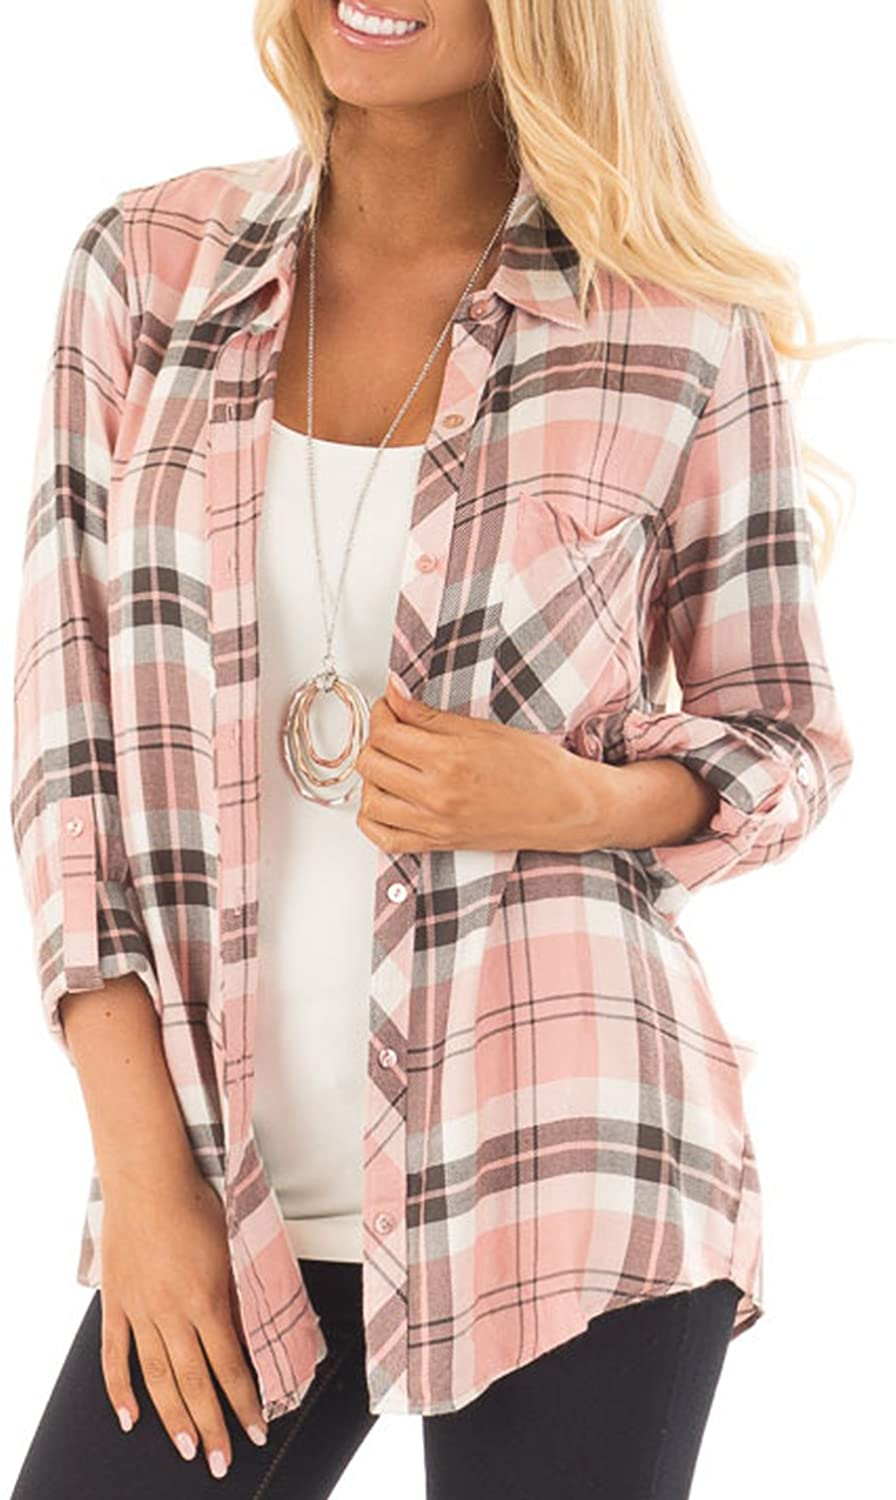 NUOREEL Womens Casual Plaid Soft Button Down Tops Roll Up Long Sleeve Cuffed Blouse Shirts